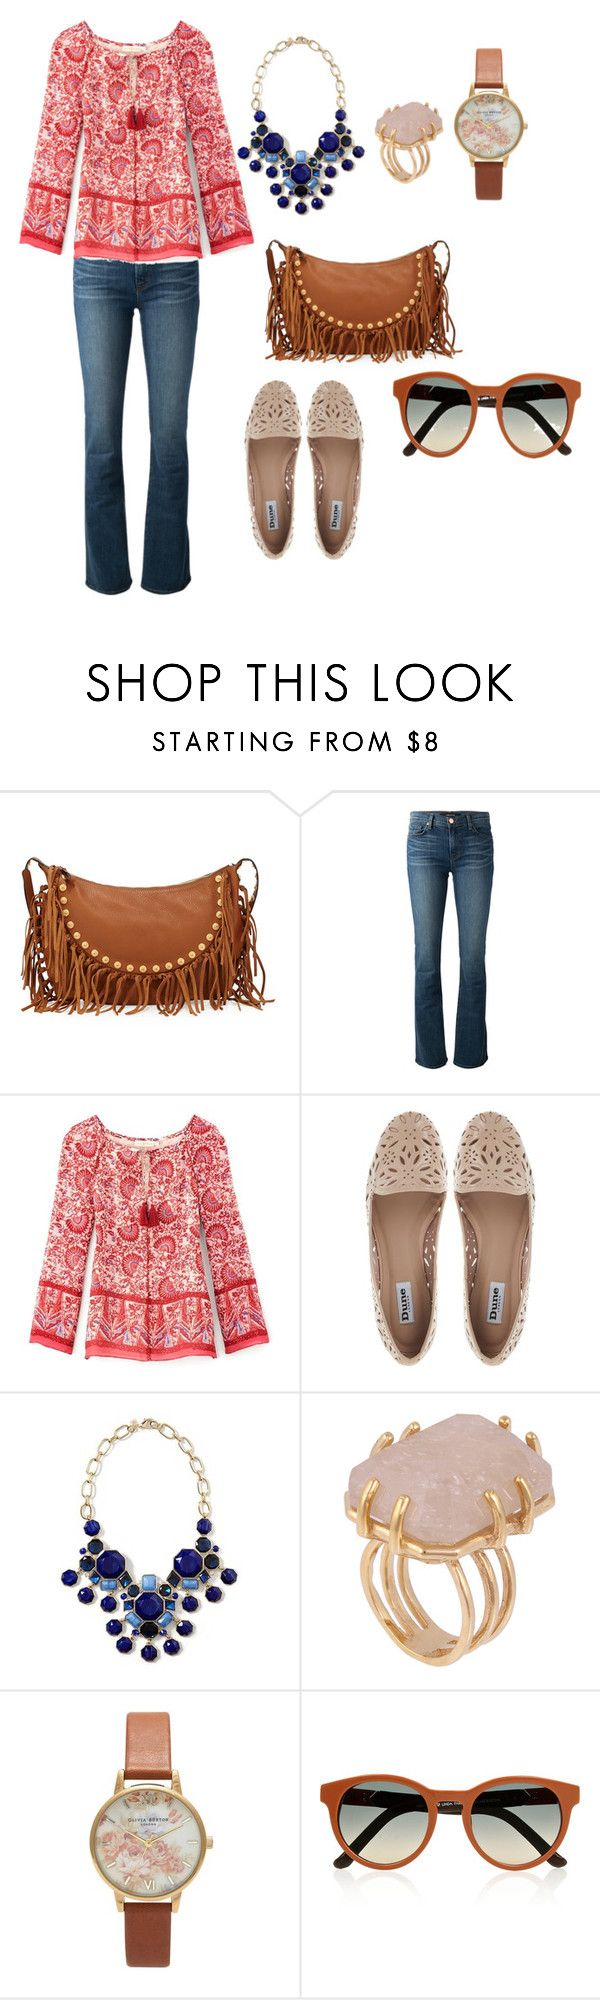 Hippie by Jeny by jenifer-mendes on Polyvore featuring Tory Burch, J Brand, Dune, Valentino, Banana Republic, Olivia Burton, Kelly Wearstler and The Row